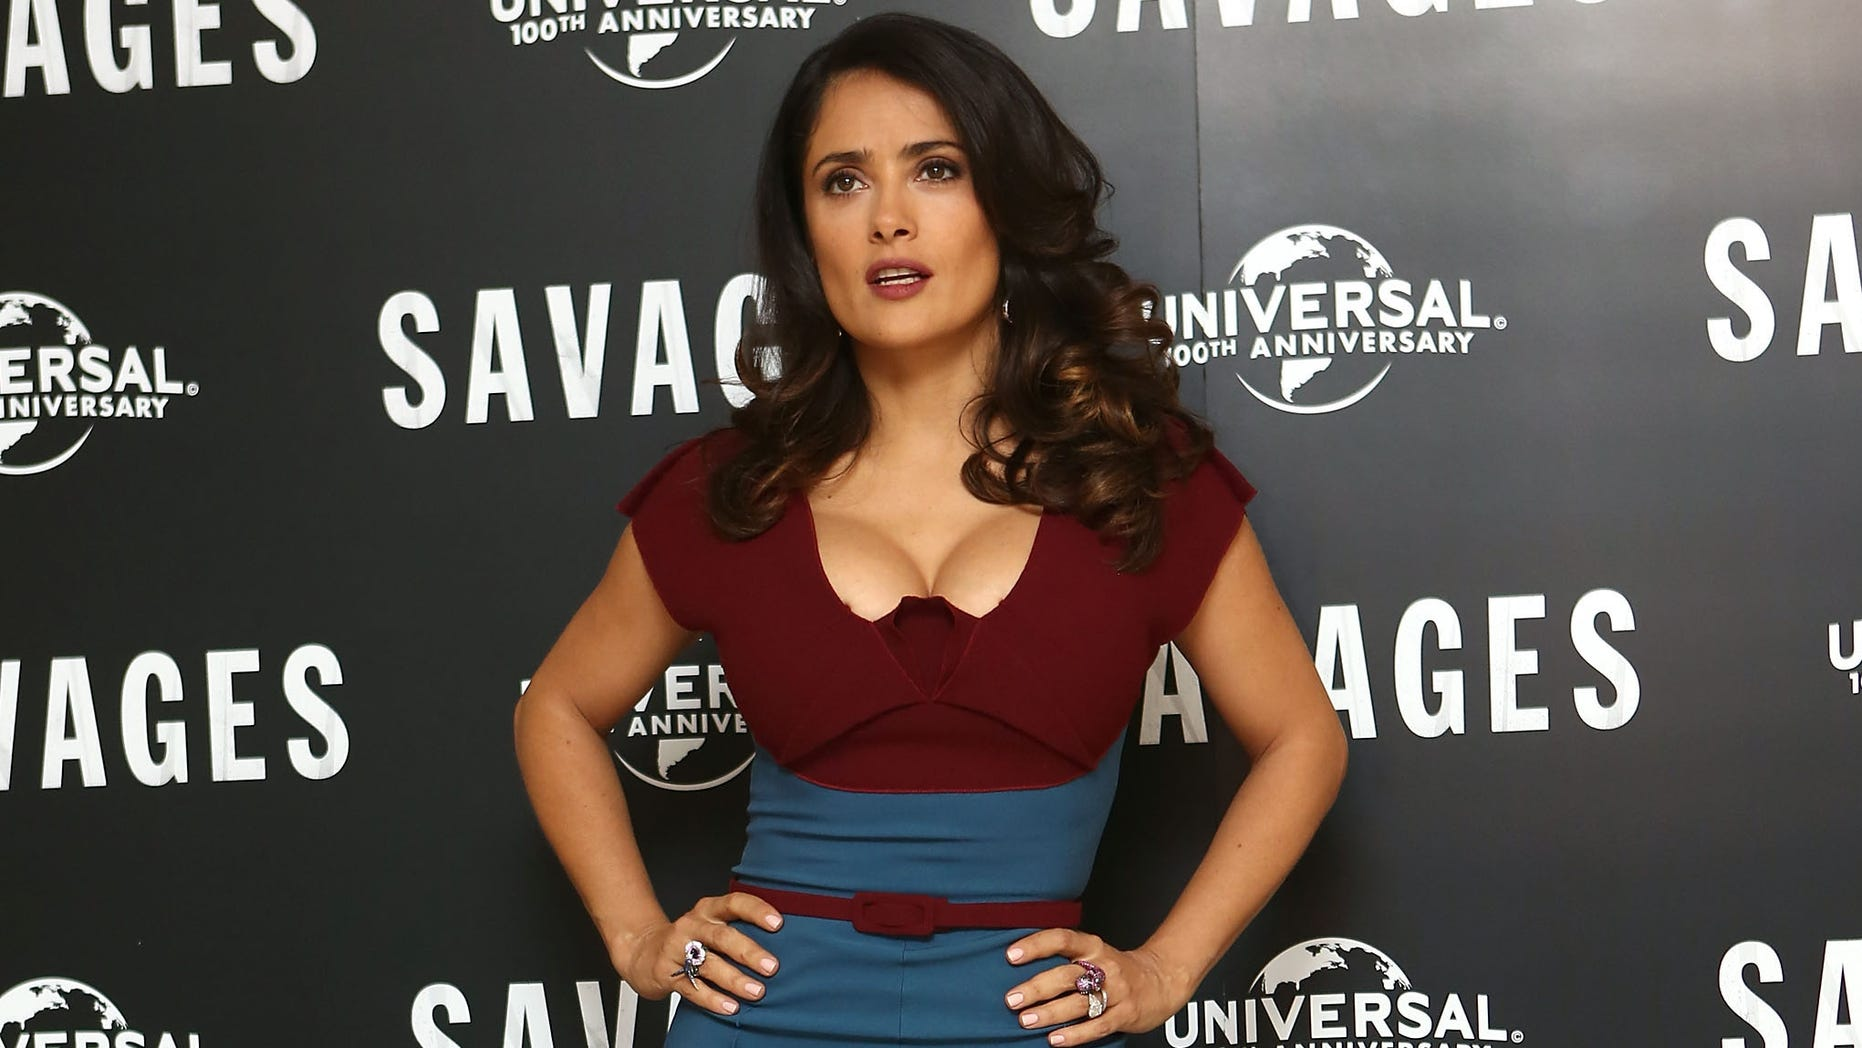 LONDON, ENGLAND - SEPTEMBER 19:  Salma Hayek attends a photocall for new film 'Savages' at The Mandarin Oriental on September 19, 2012 in London, England.  (Photo by Tim Whitby/Getty Images)